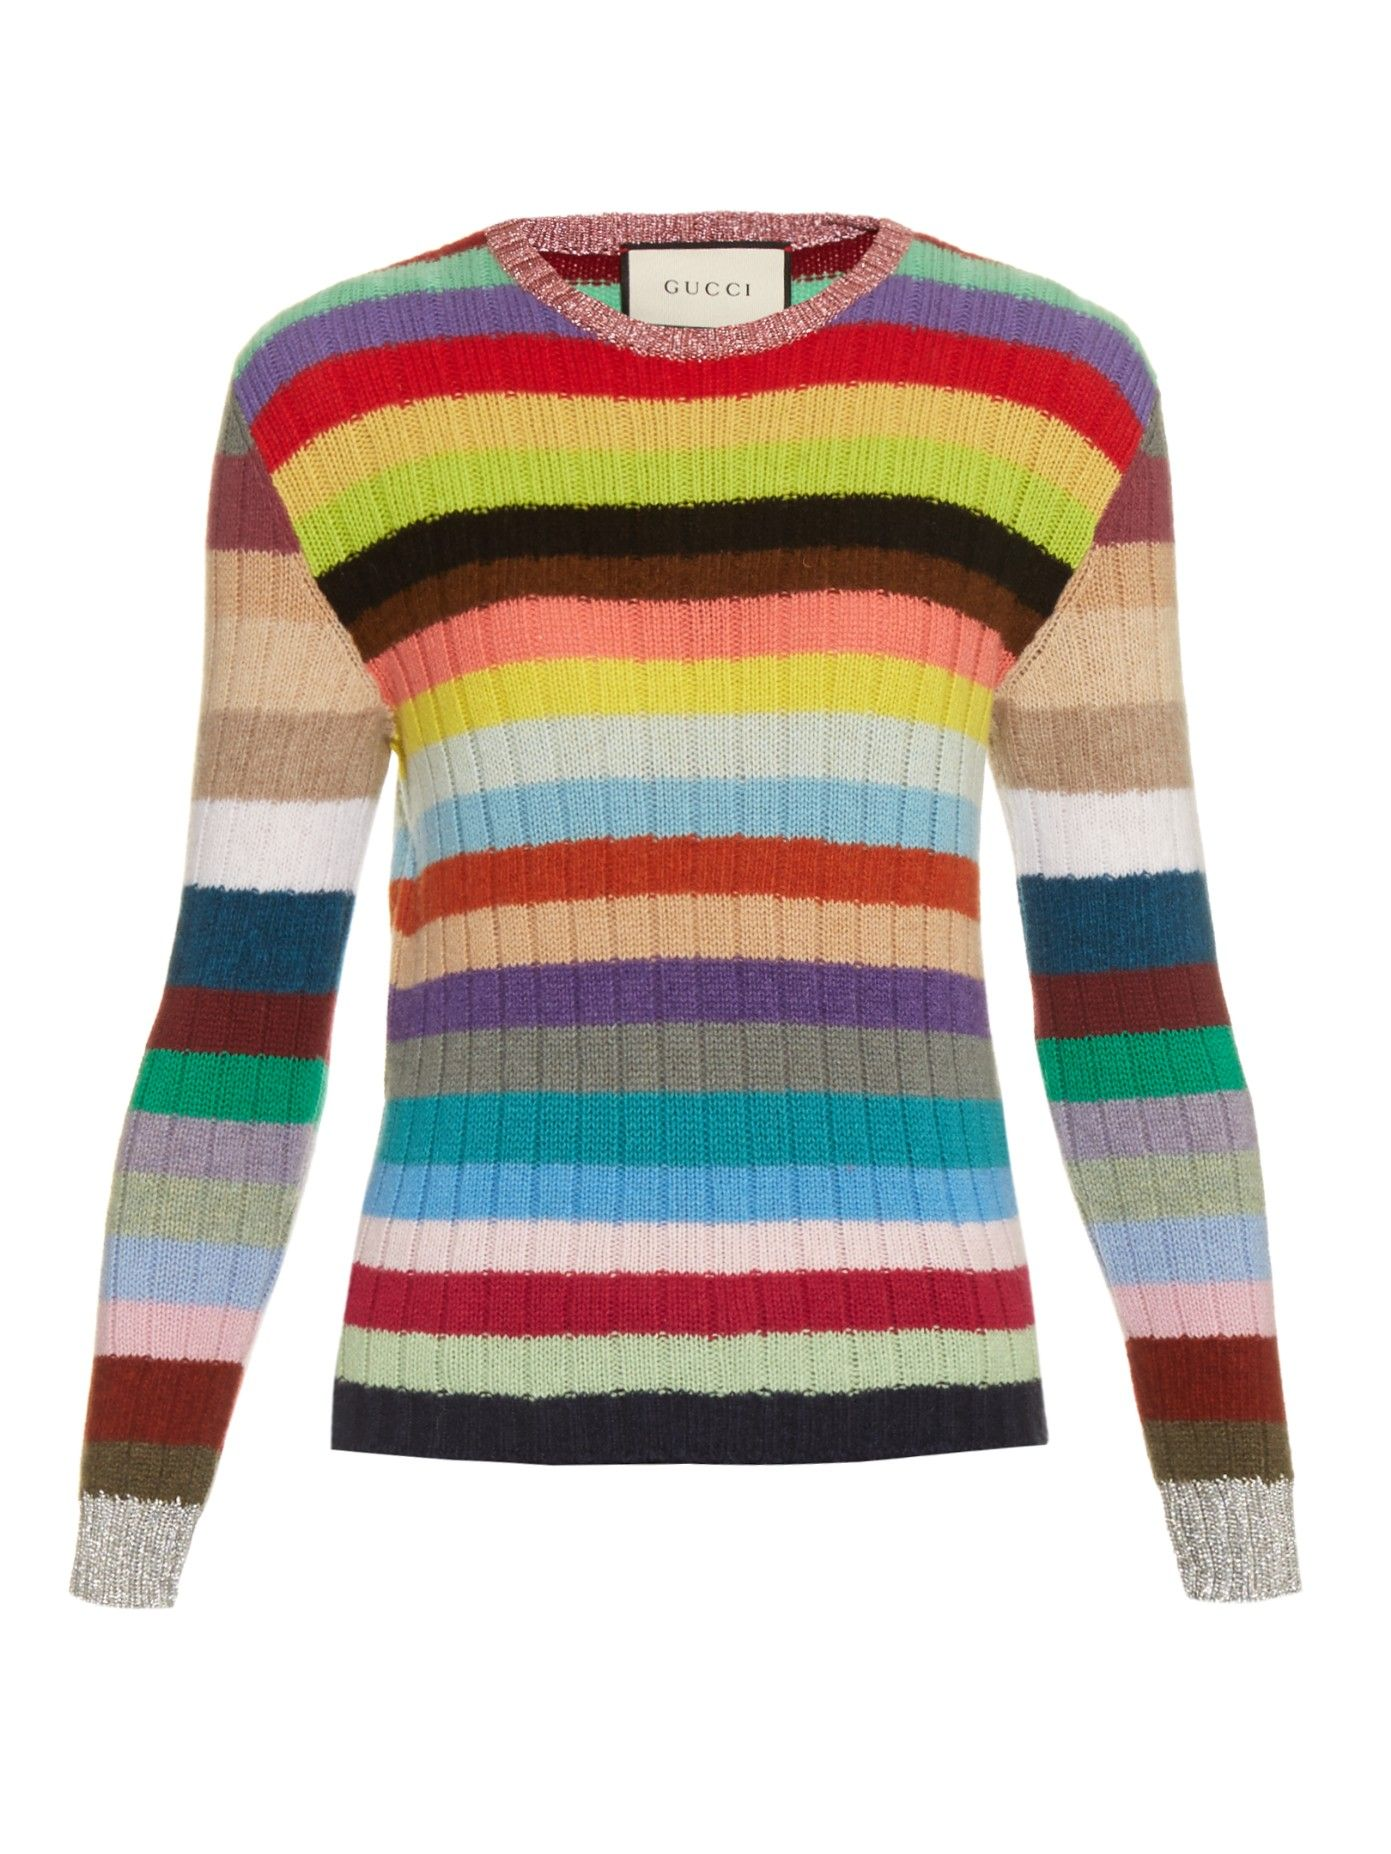 Rainbow-striped cashmere and wool-blend sweater by Gucci | Shop ...